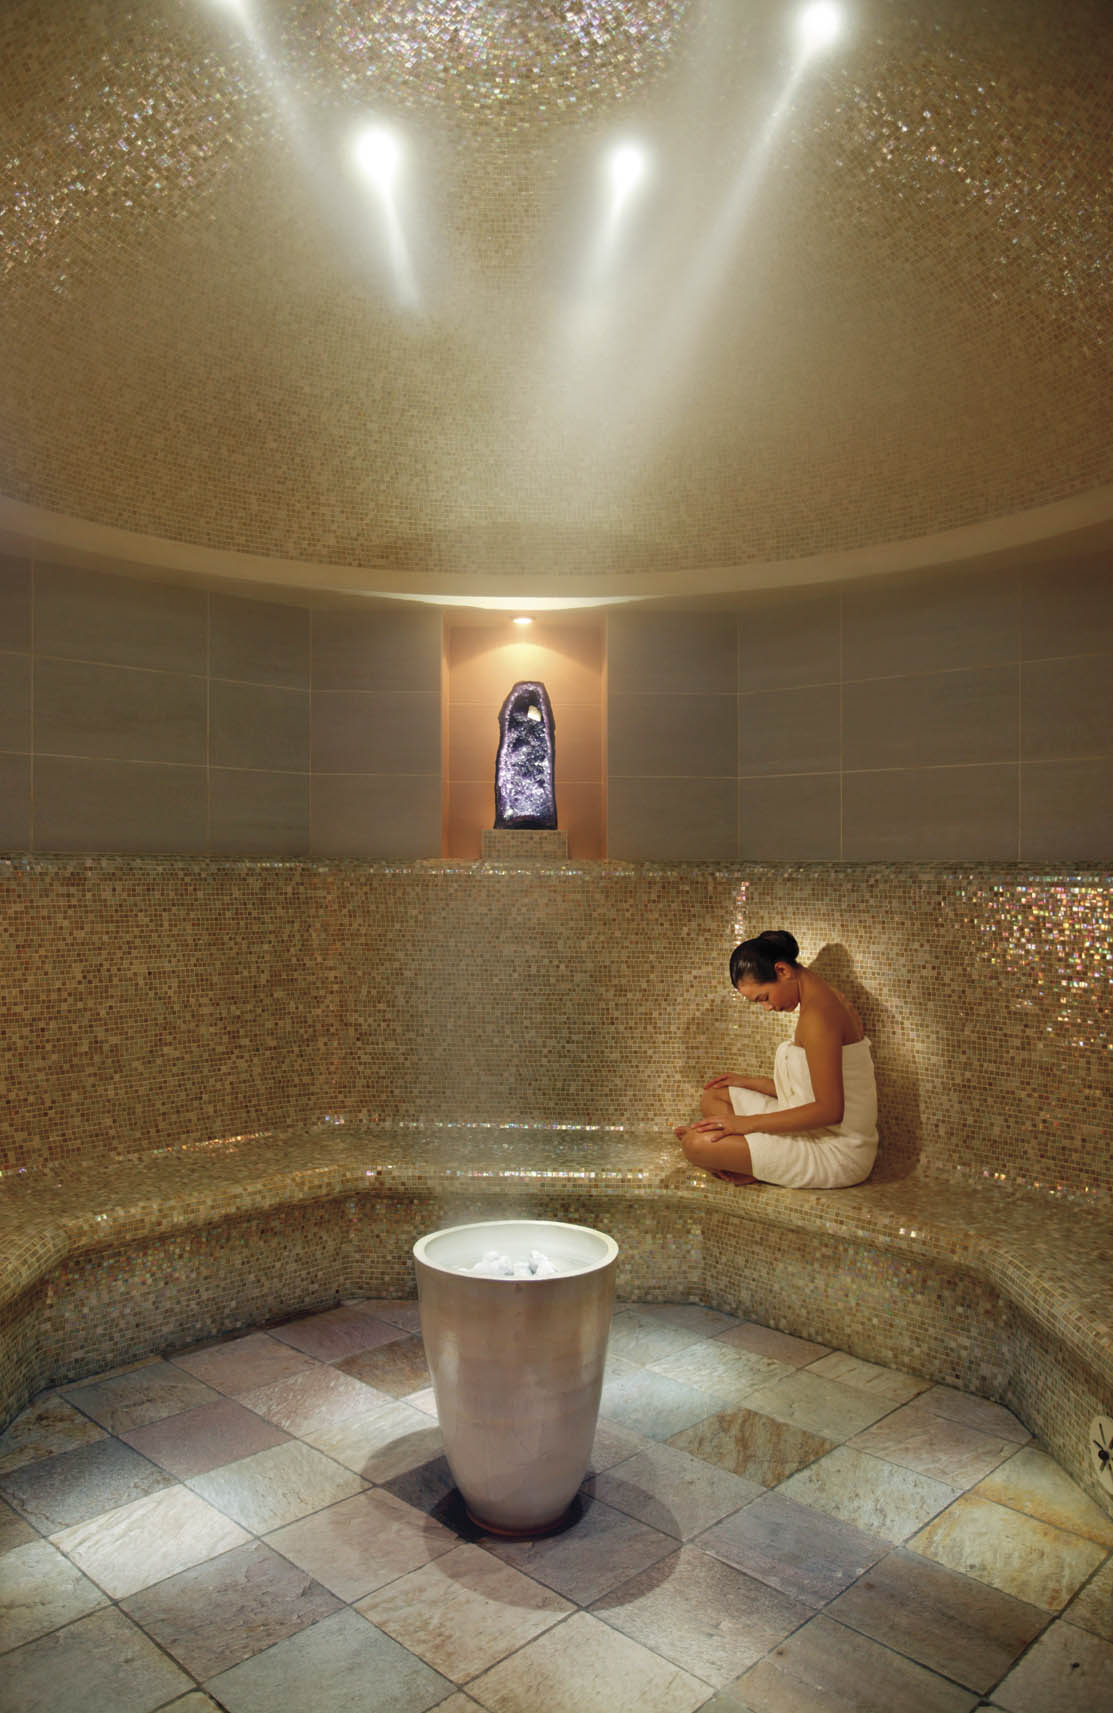 Spa_Amethyst Steam Room 2_2004_No Copyright Credit Required.jpg